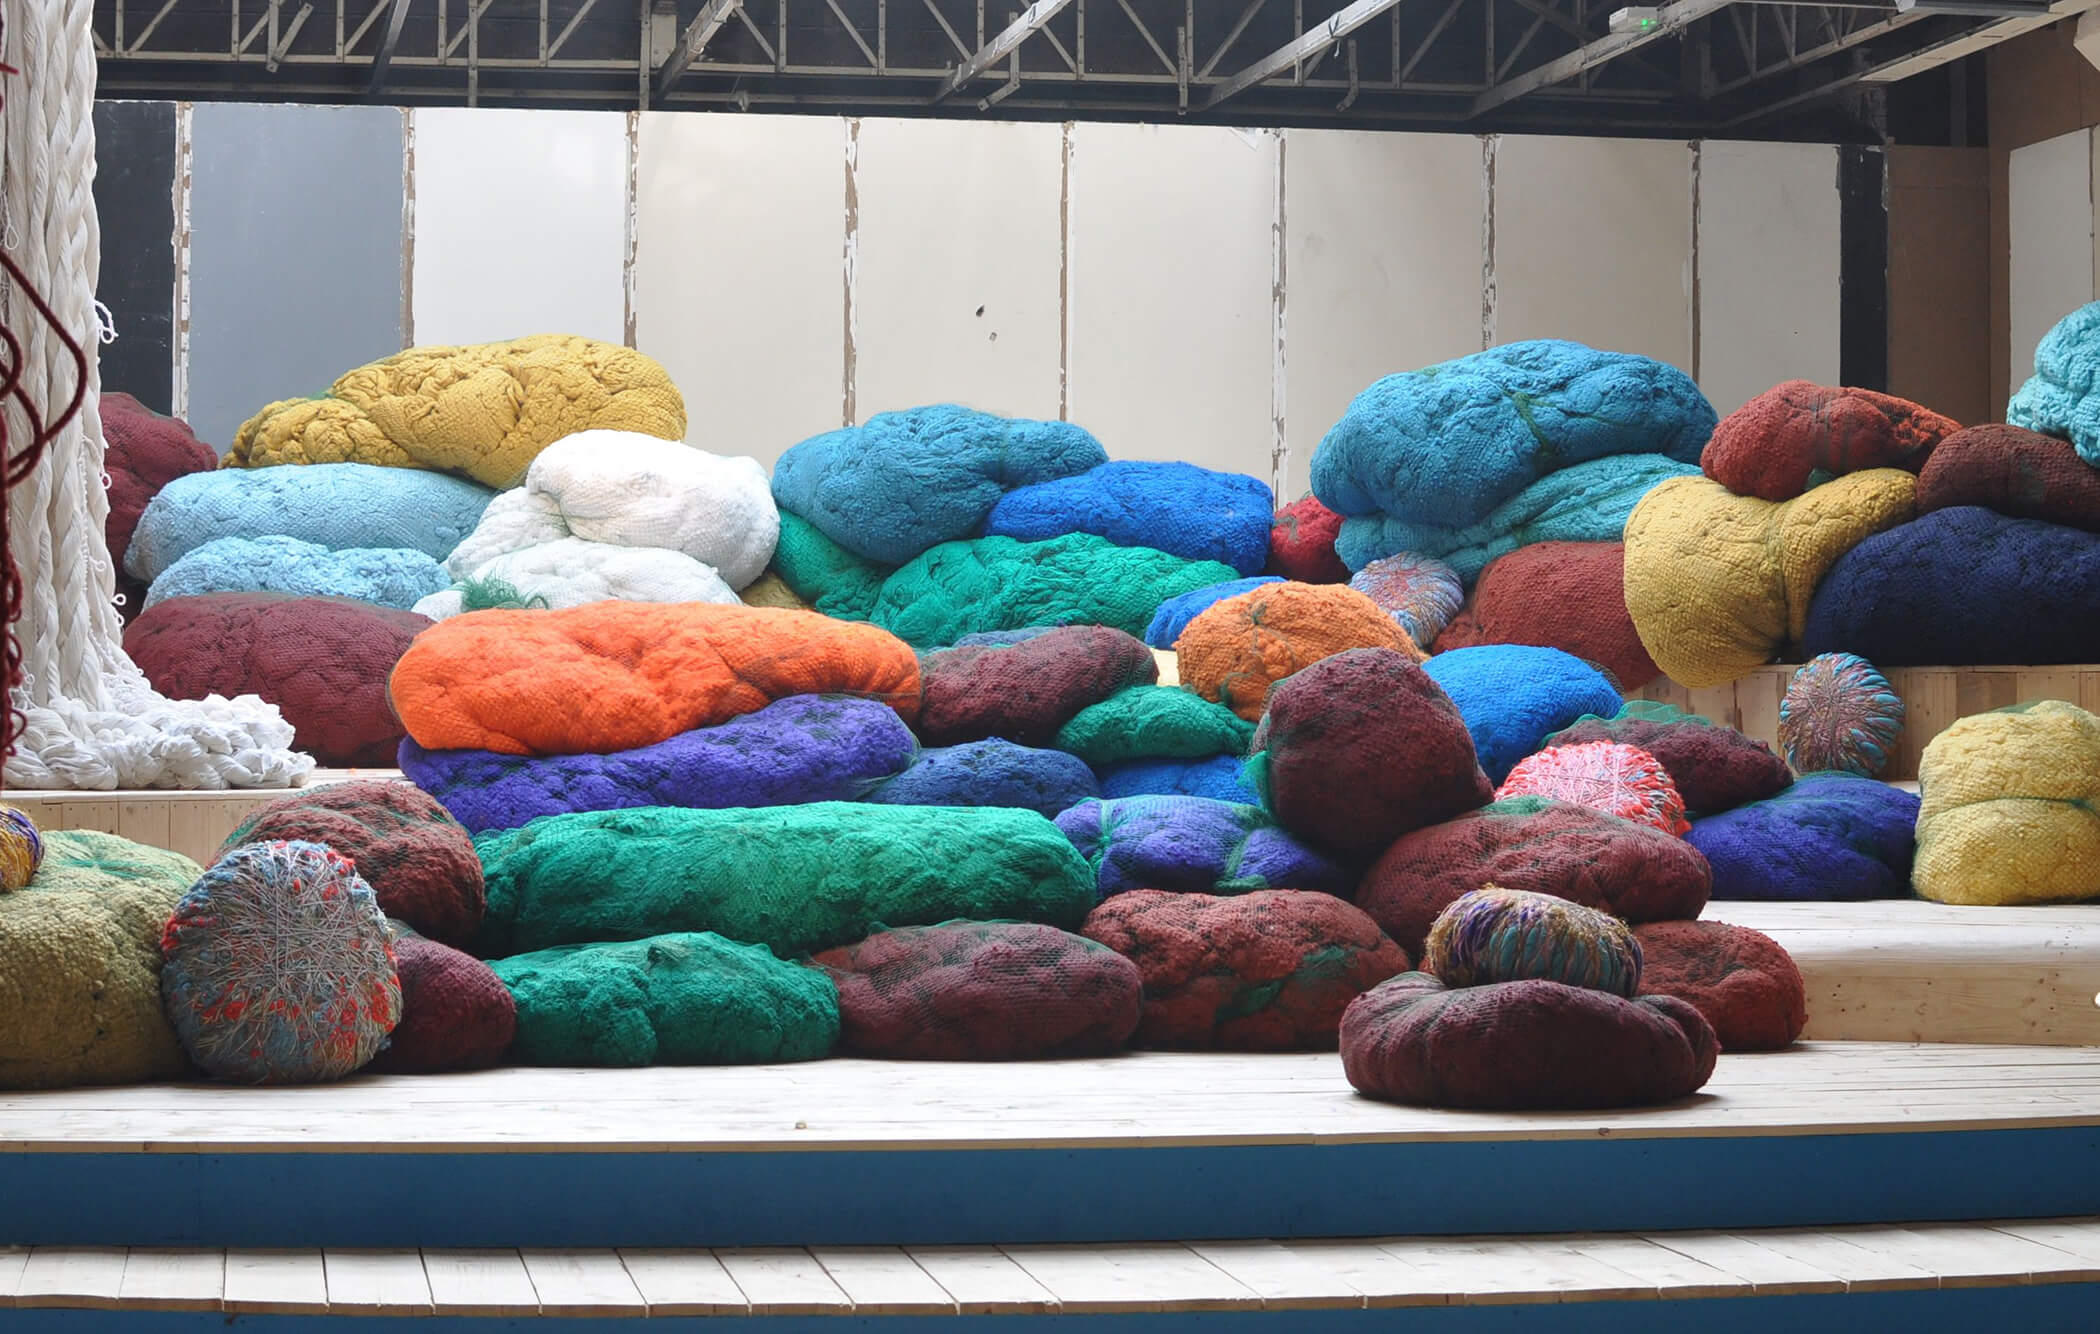 Brightly colored Sunbrella fibers at the Sheila Hicks installation at the Palais de Tokyo